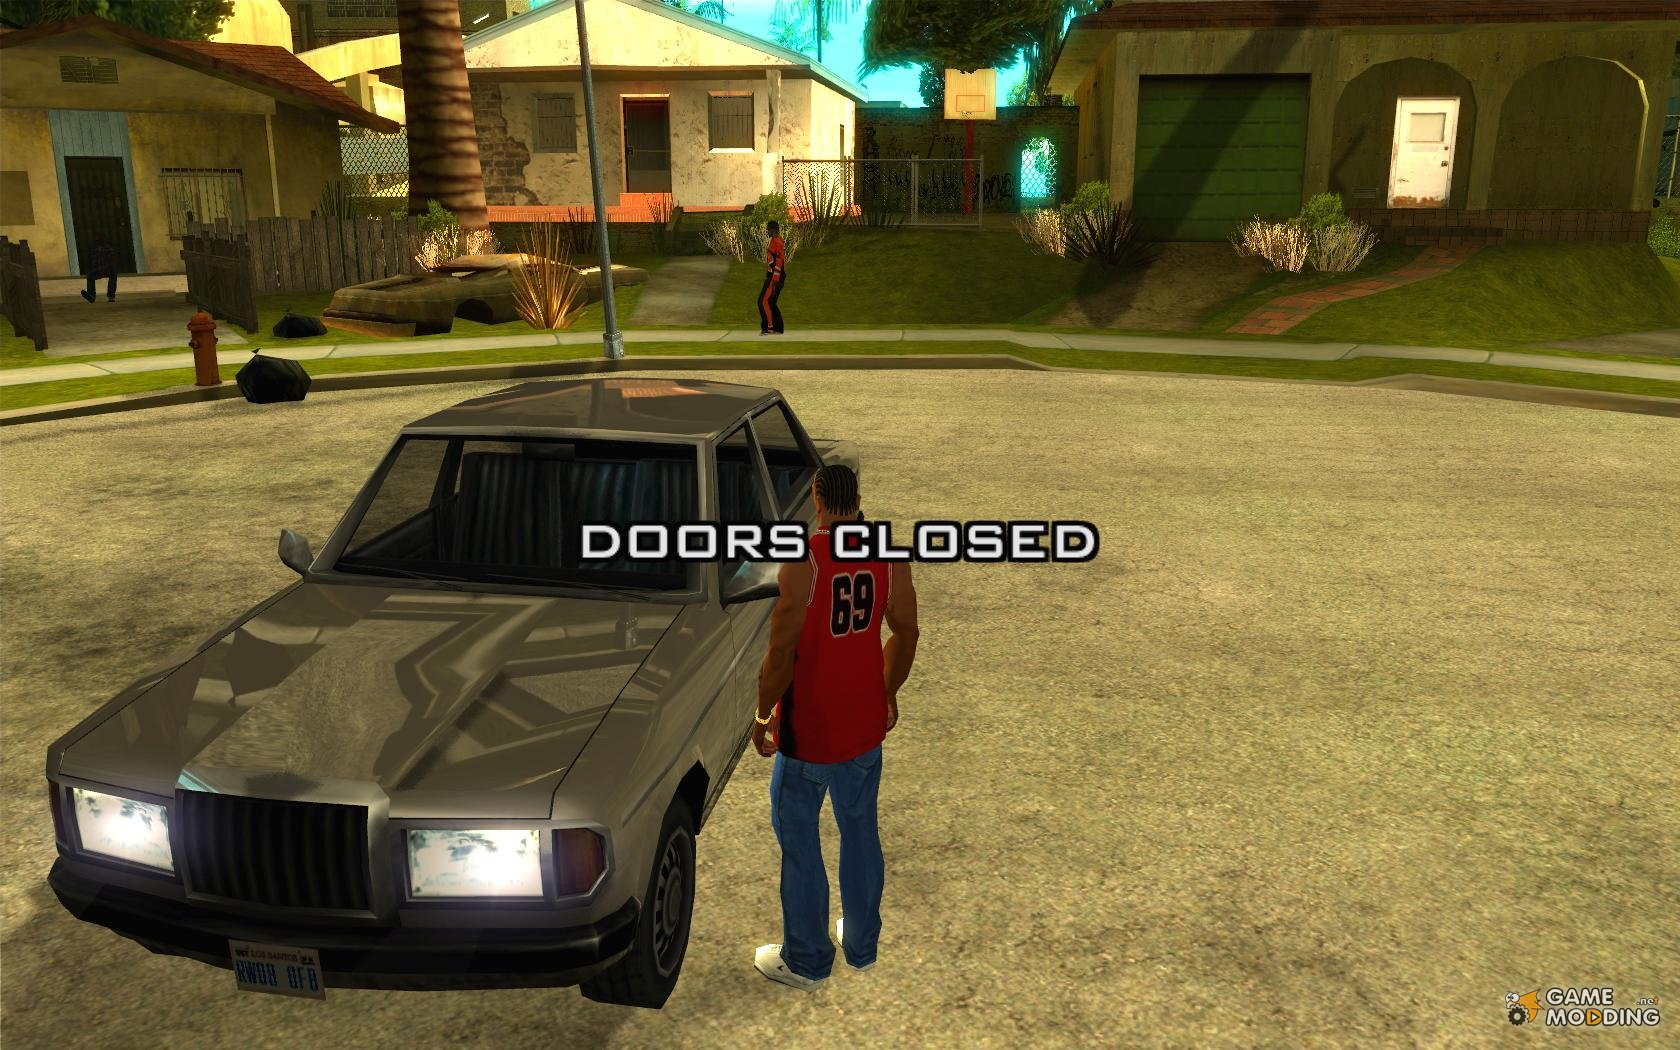 This mod required cleo 4 for gta san andreas